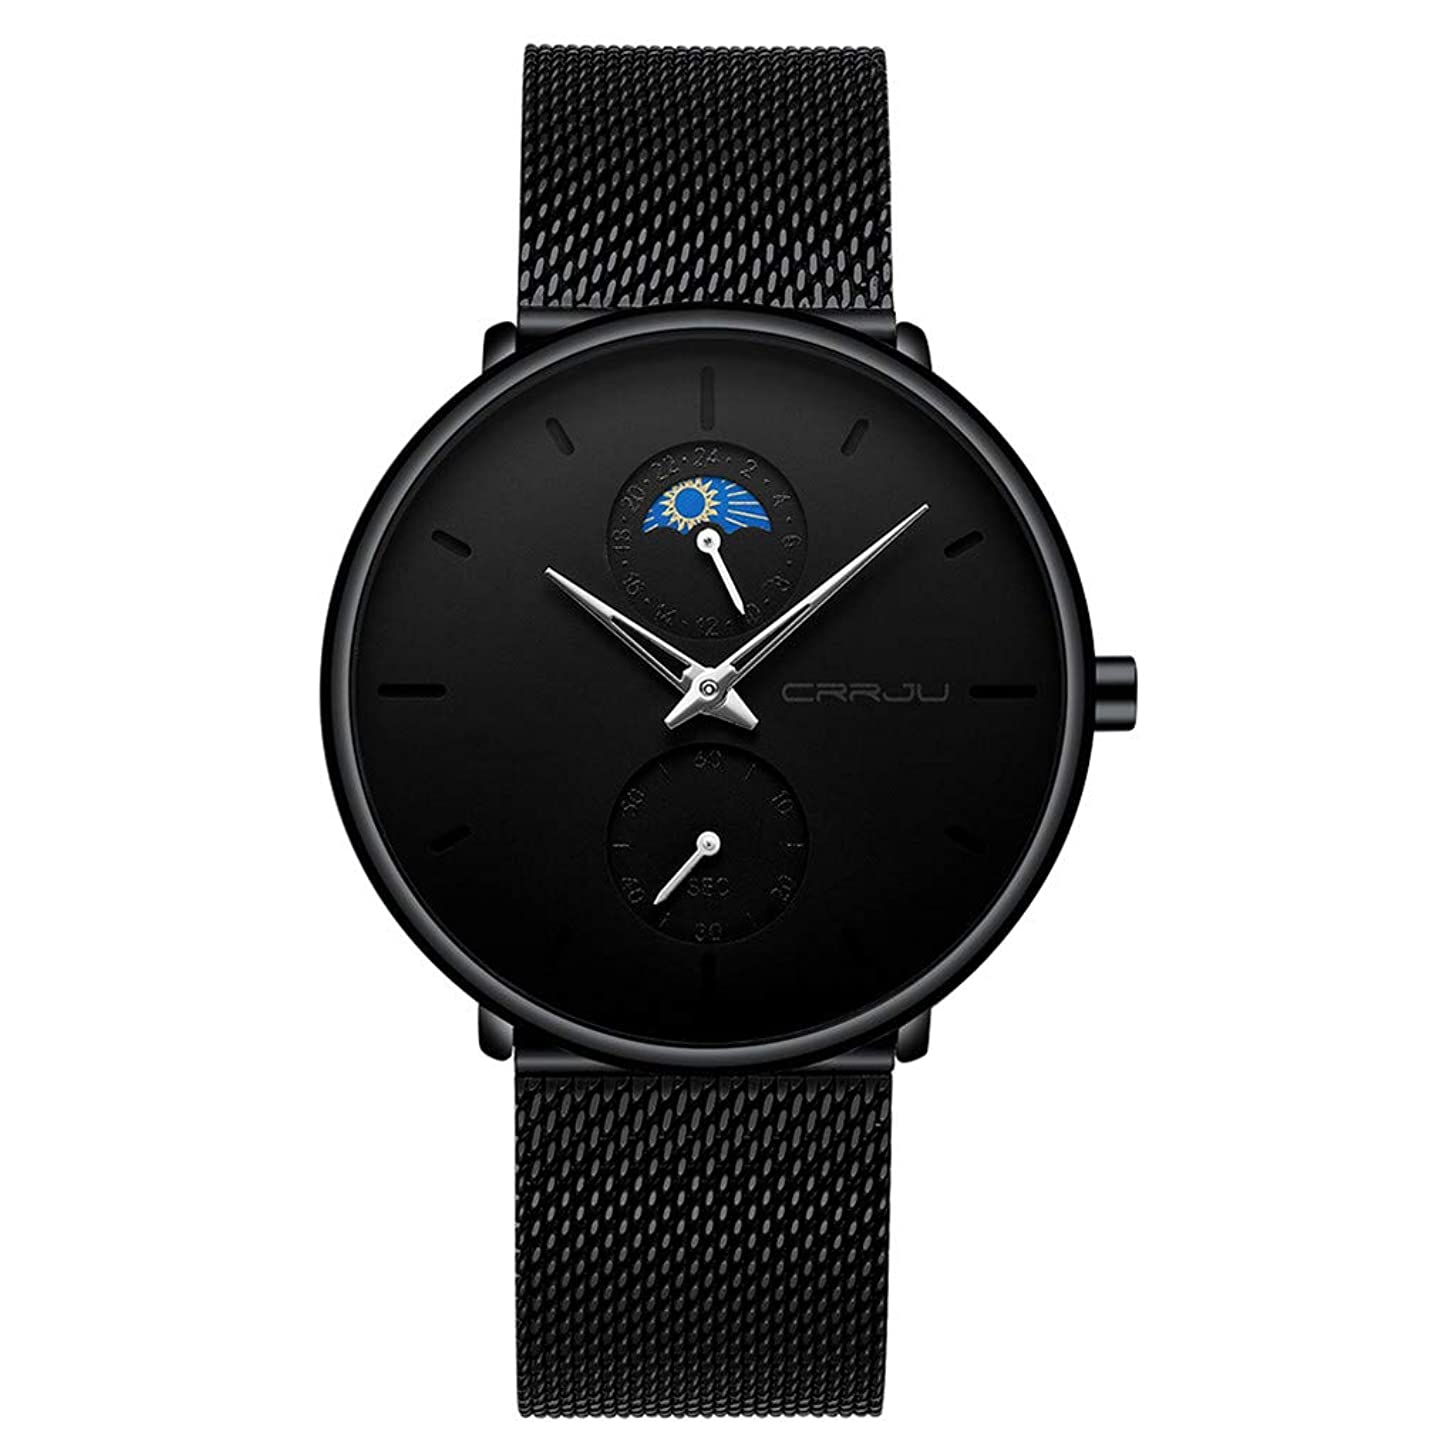 Londony? Men's Fashion Watch Simple Casual Analog Quartz Date with Black Milanese Mesh Band Minimalist Wrist Watches